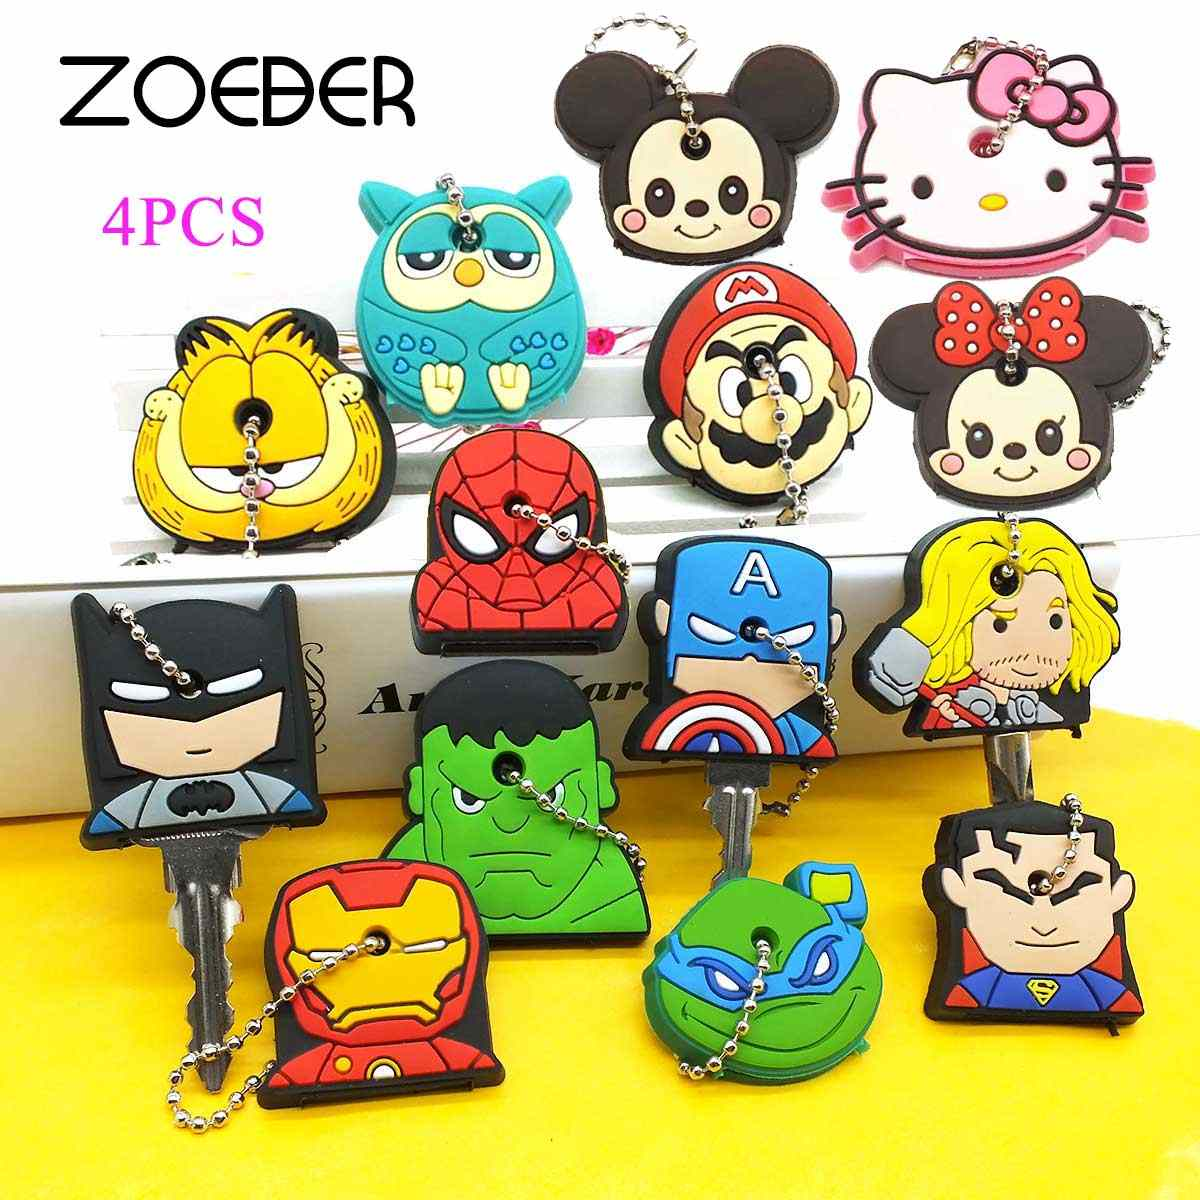 ZOEBER 4 pçs/lote Criança Dos Desenhos Animados Chaveiro Bonito Para As Mulheres Minnie KT Spiderman Batman Superman Super Hero do Anel Chave da corrente chave cadeia